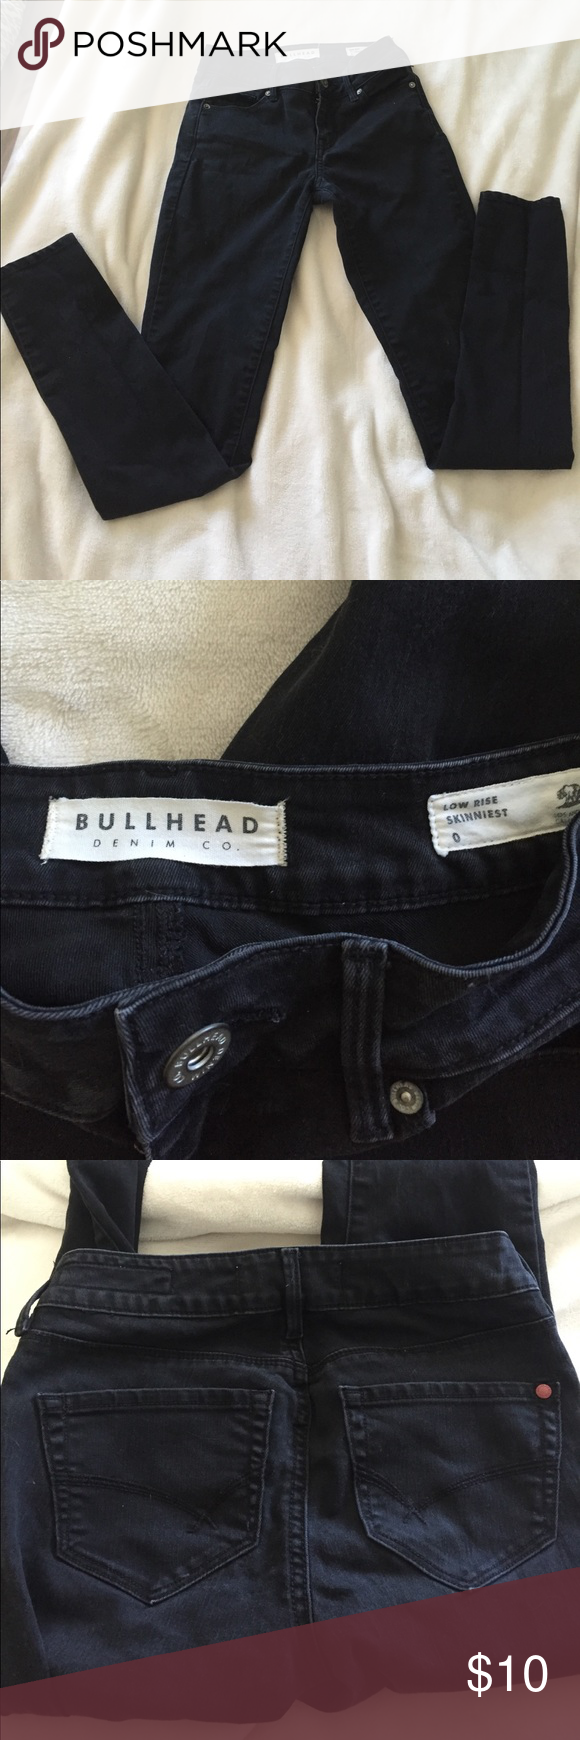 Black Bullhead Low Rise Skinny Jeans In excellent condition. No flaws and comes from a smoke free home! Size 0 Bullhead Jeans Skinny